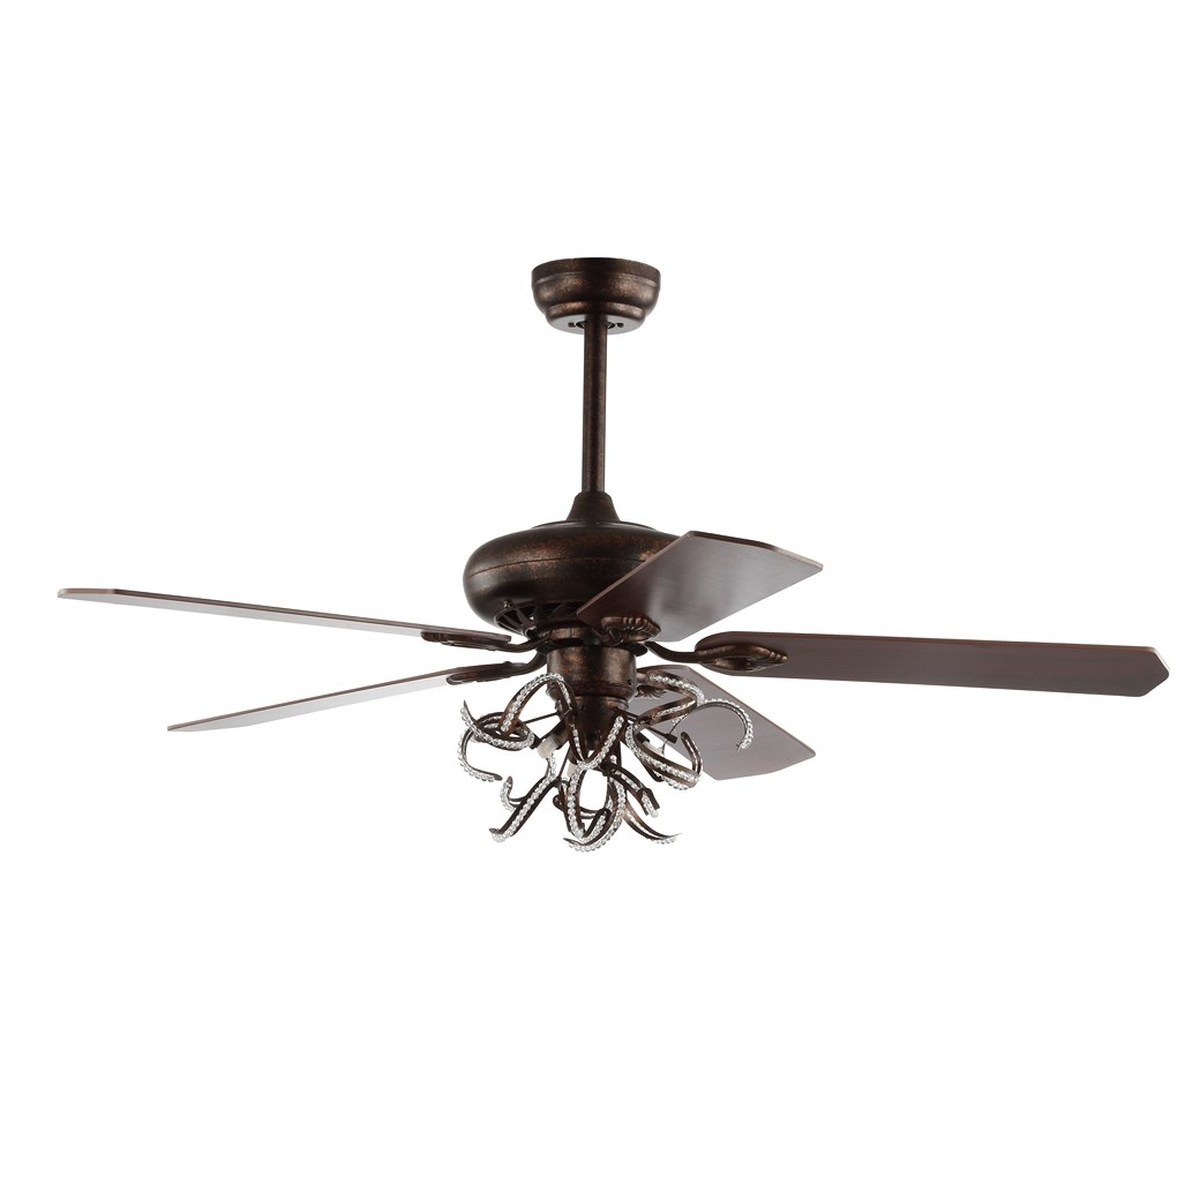 Clf1004a Ceiling Fans Lighting By Safavieh